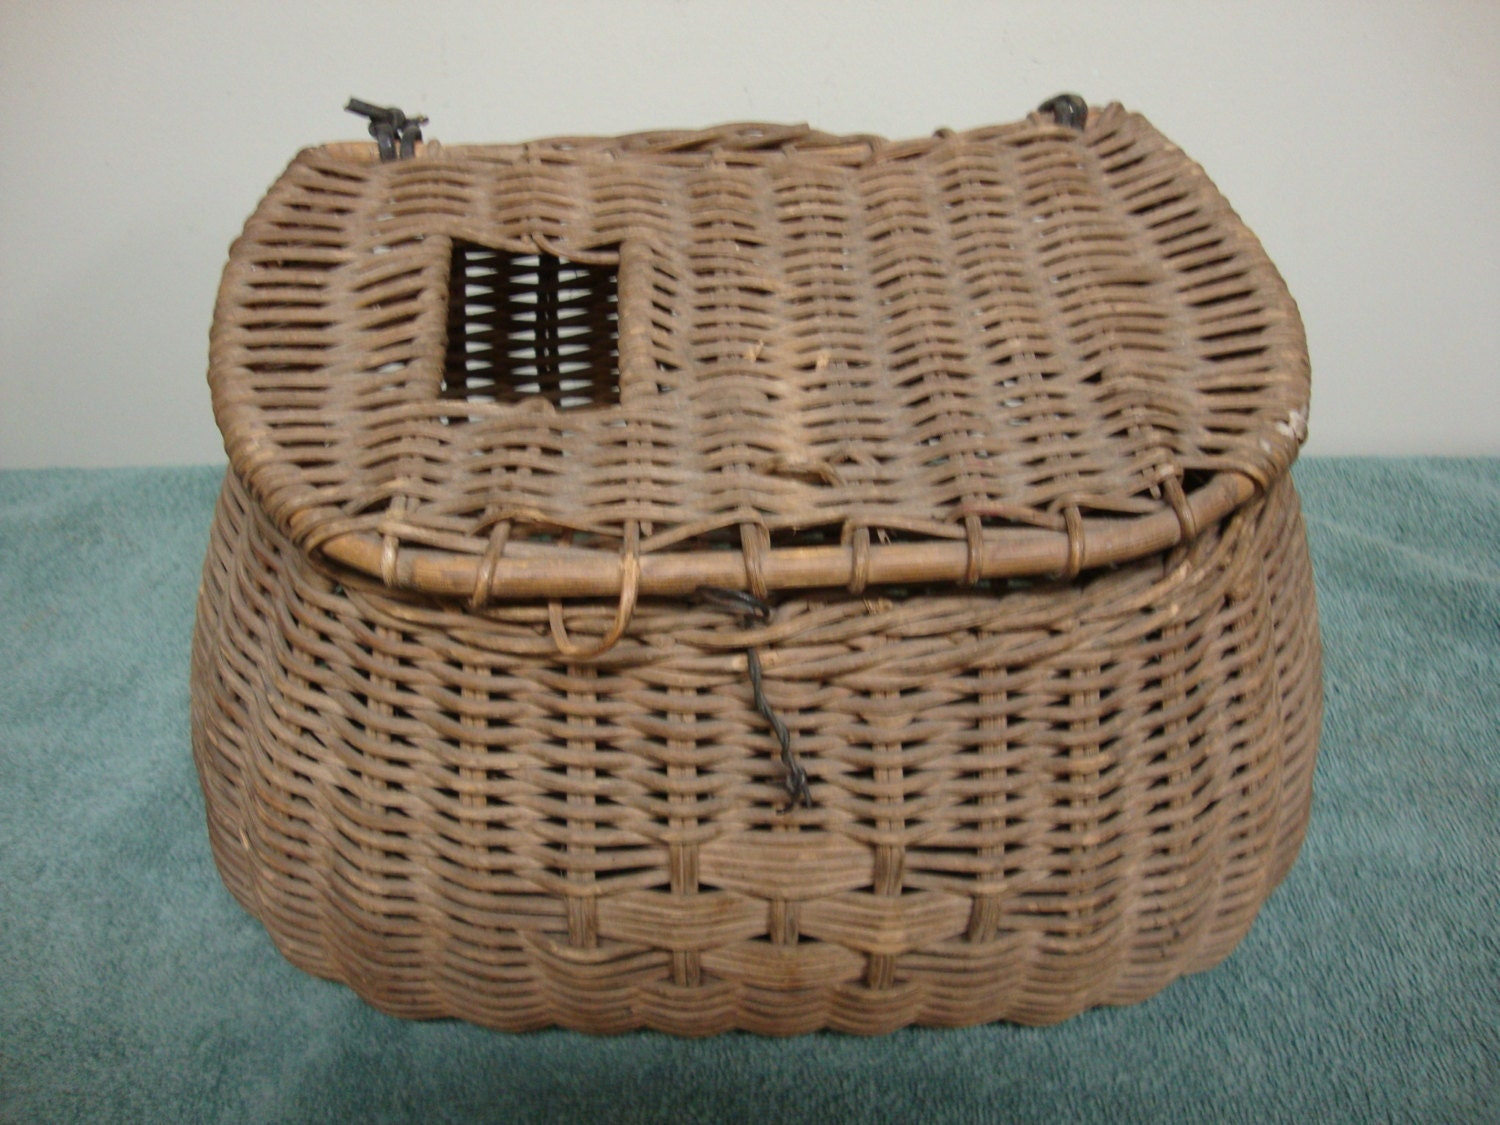 Antique woven basket fishing creel by edsfinds on etsy for Fishing creel basket